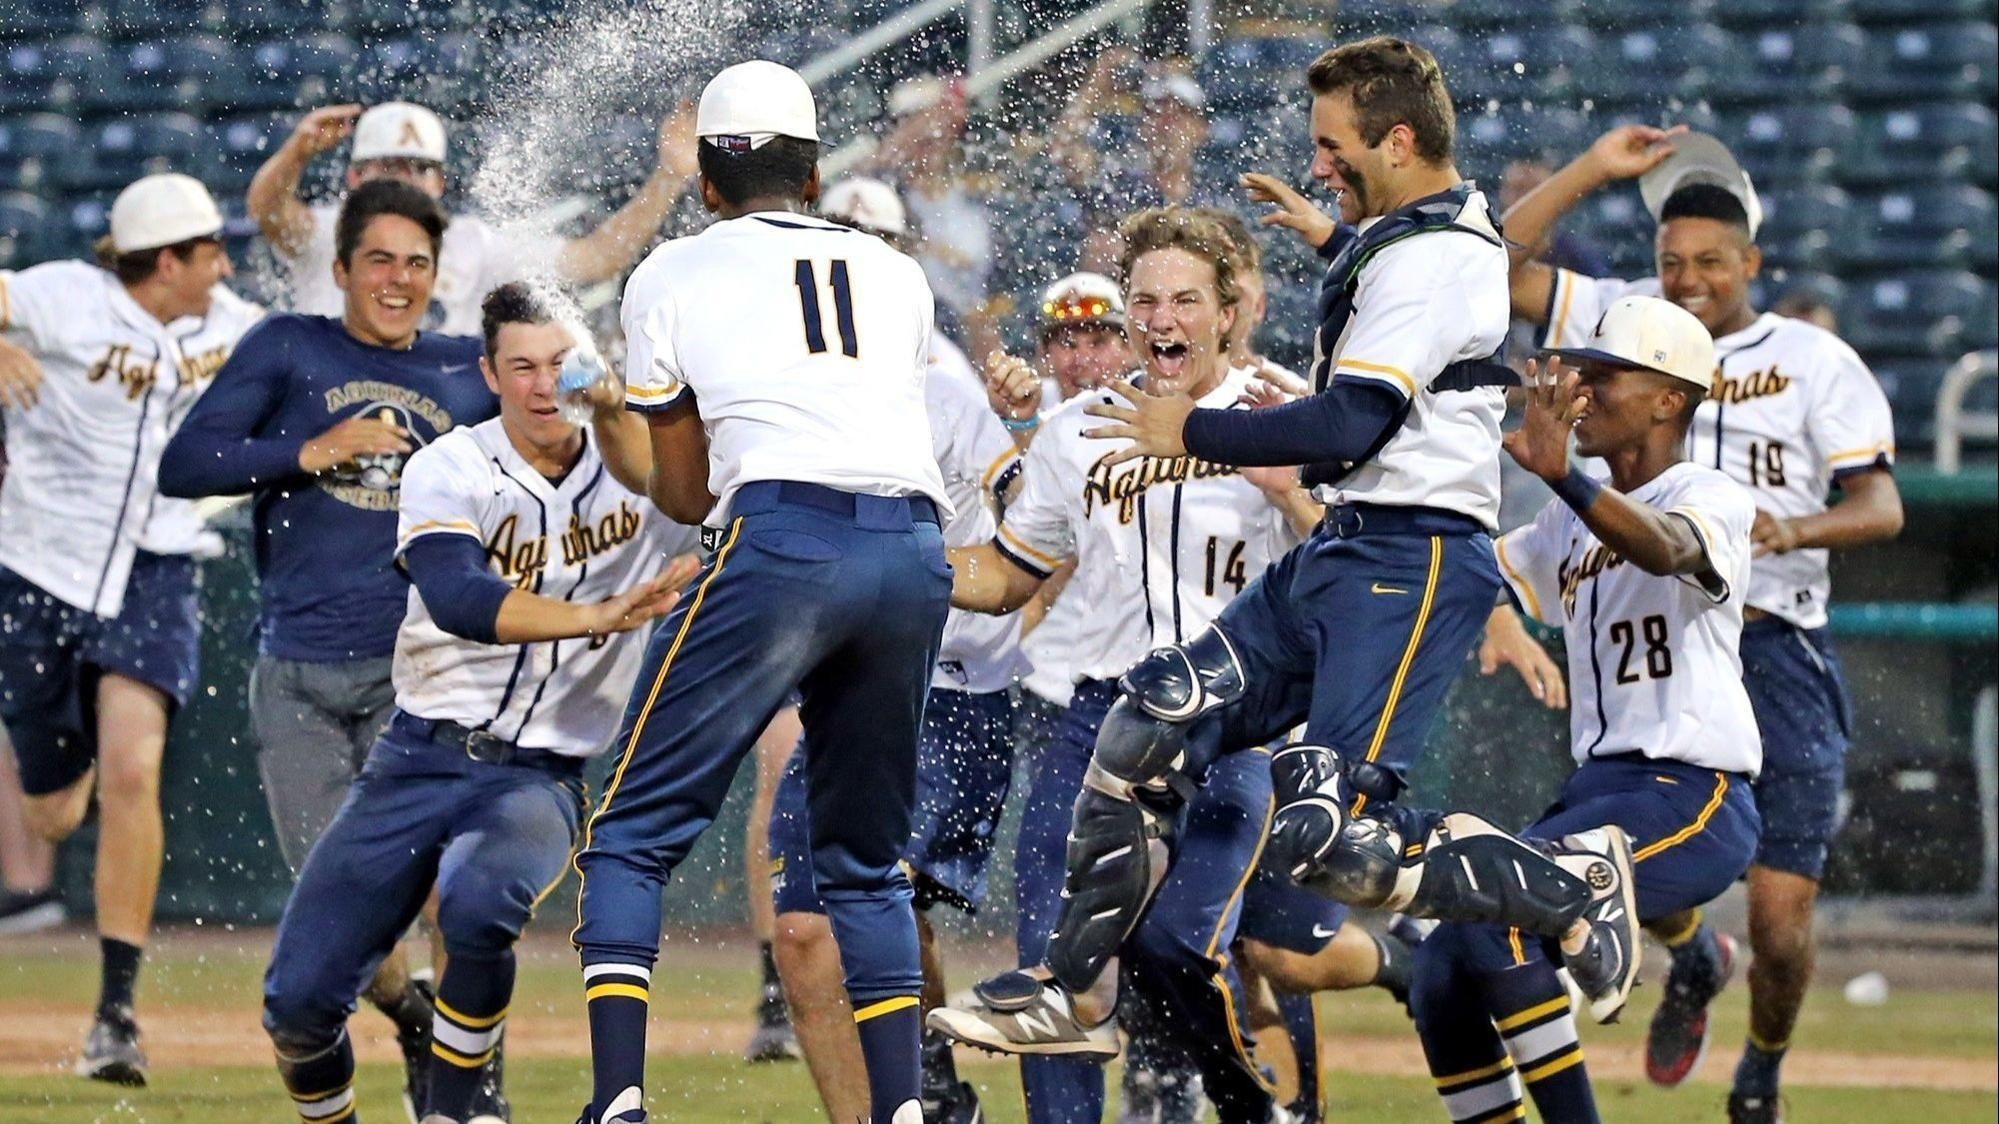 St Thomas Aquinas Rolled In The Class 8a State Baseball Championship Game Topping Sarasota For The Raiders Championship Game Thomas Aquinas Track And Field